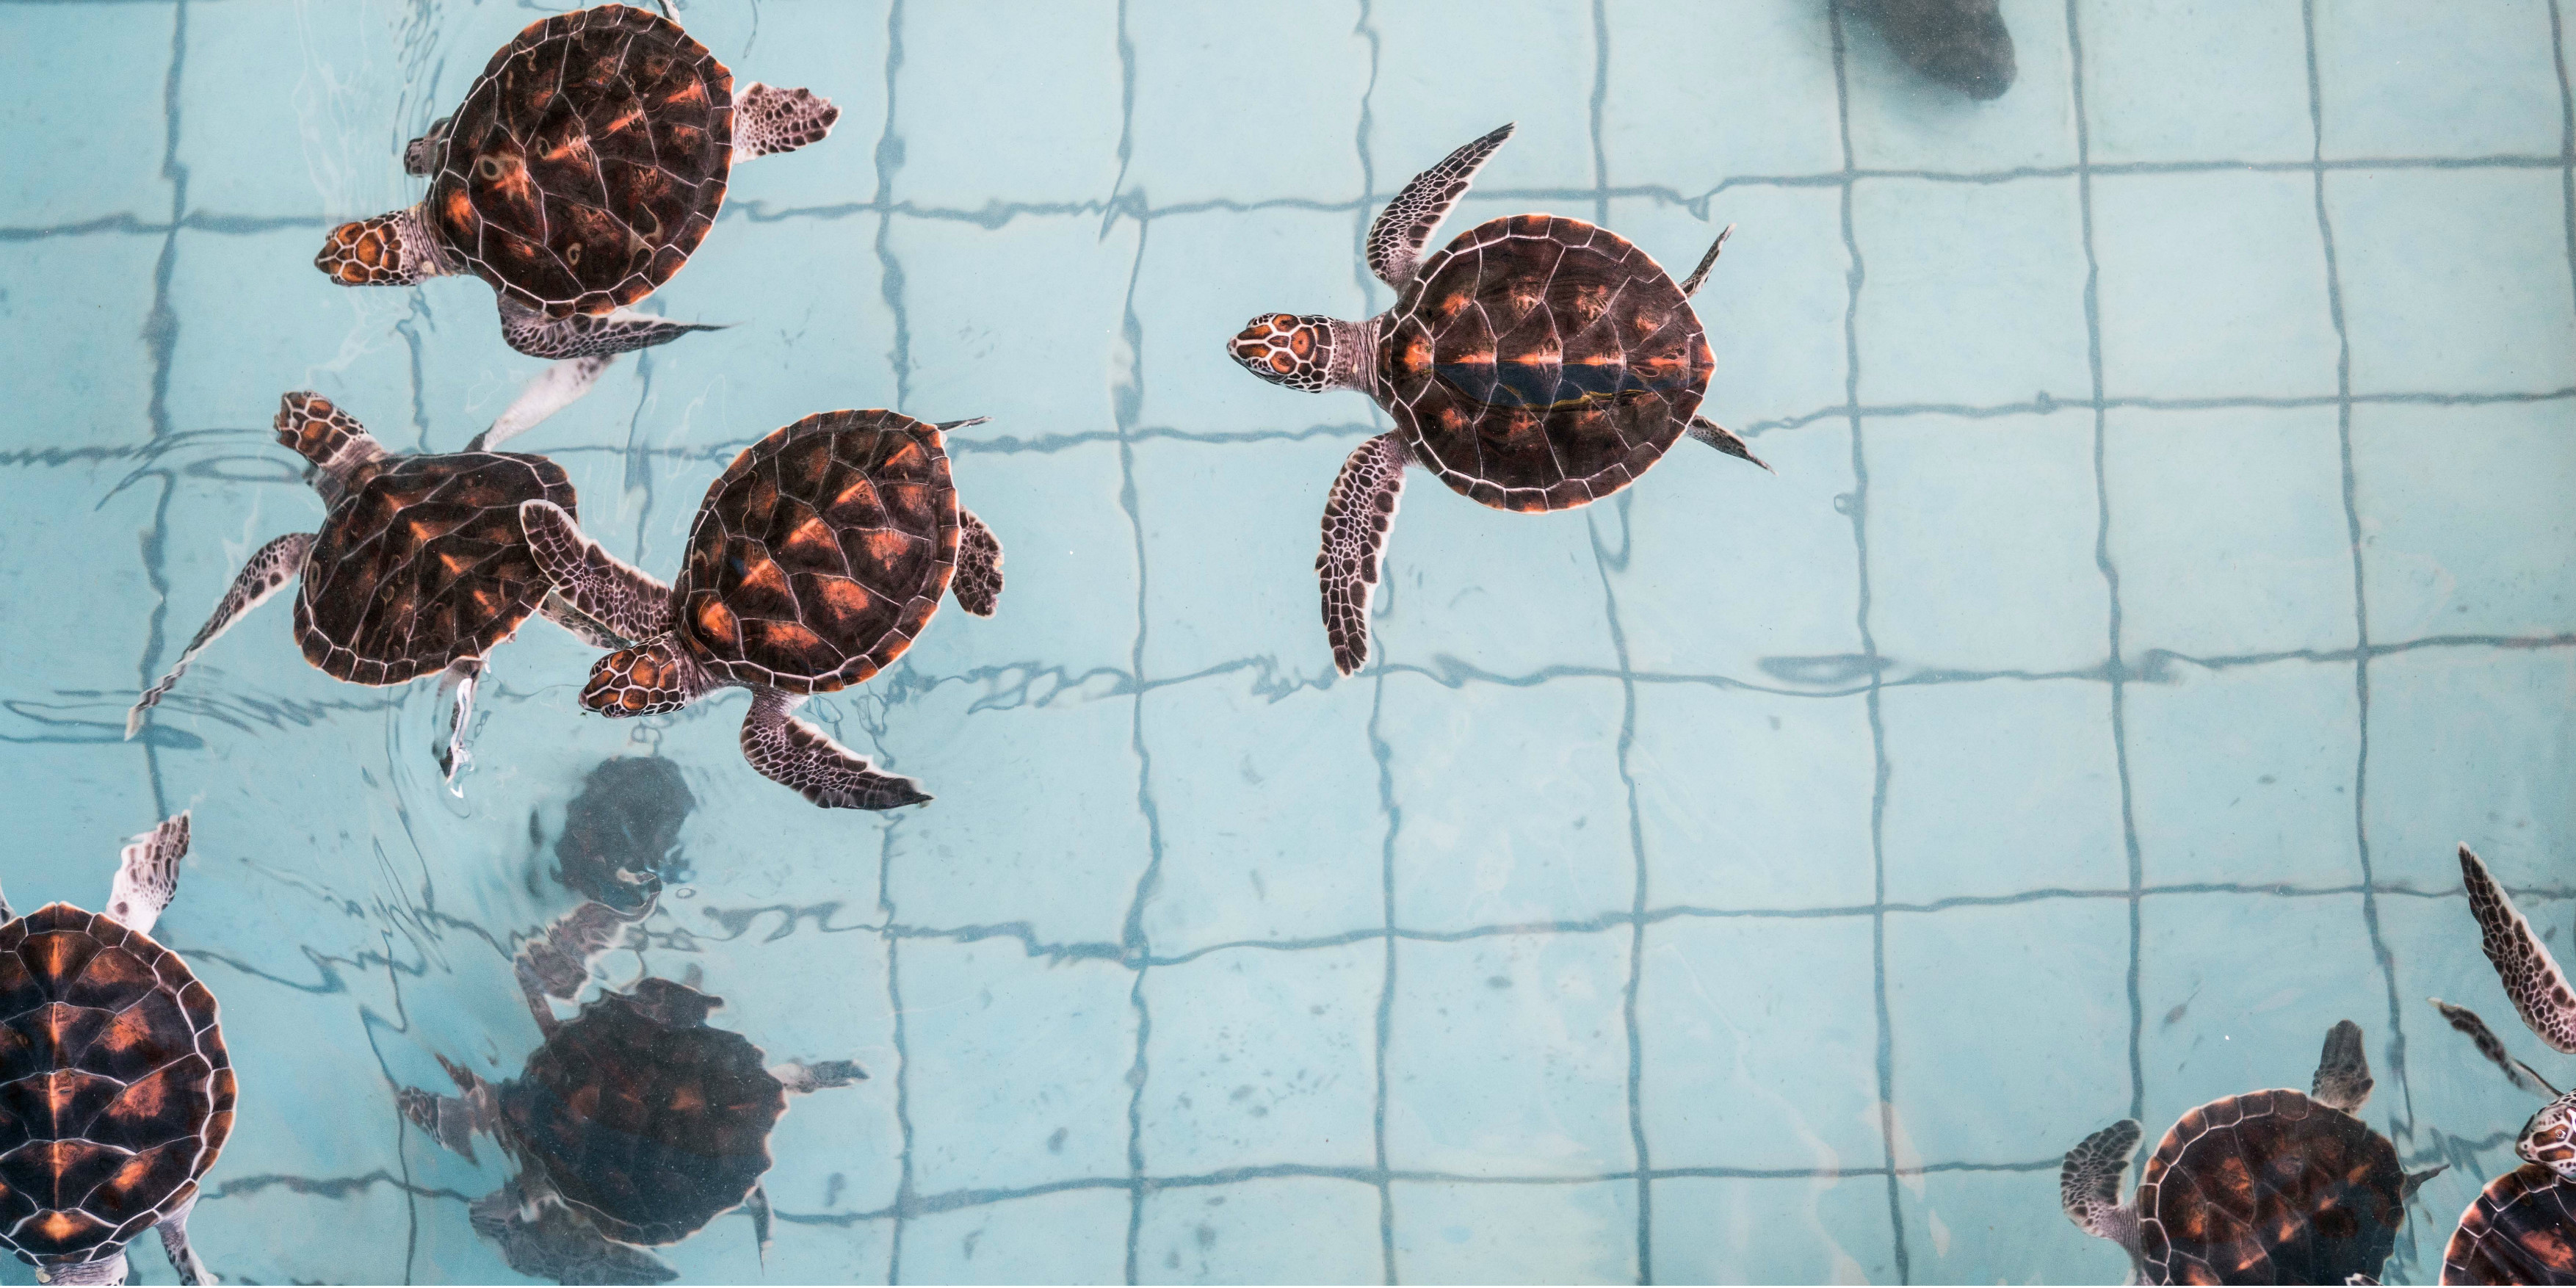 Growing sea turtles swim in a turtle tank as part of a sea turtle conservation program.